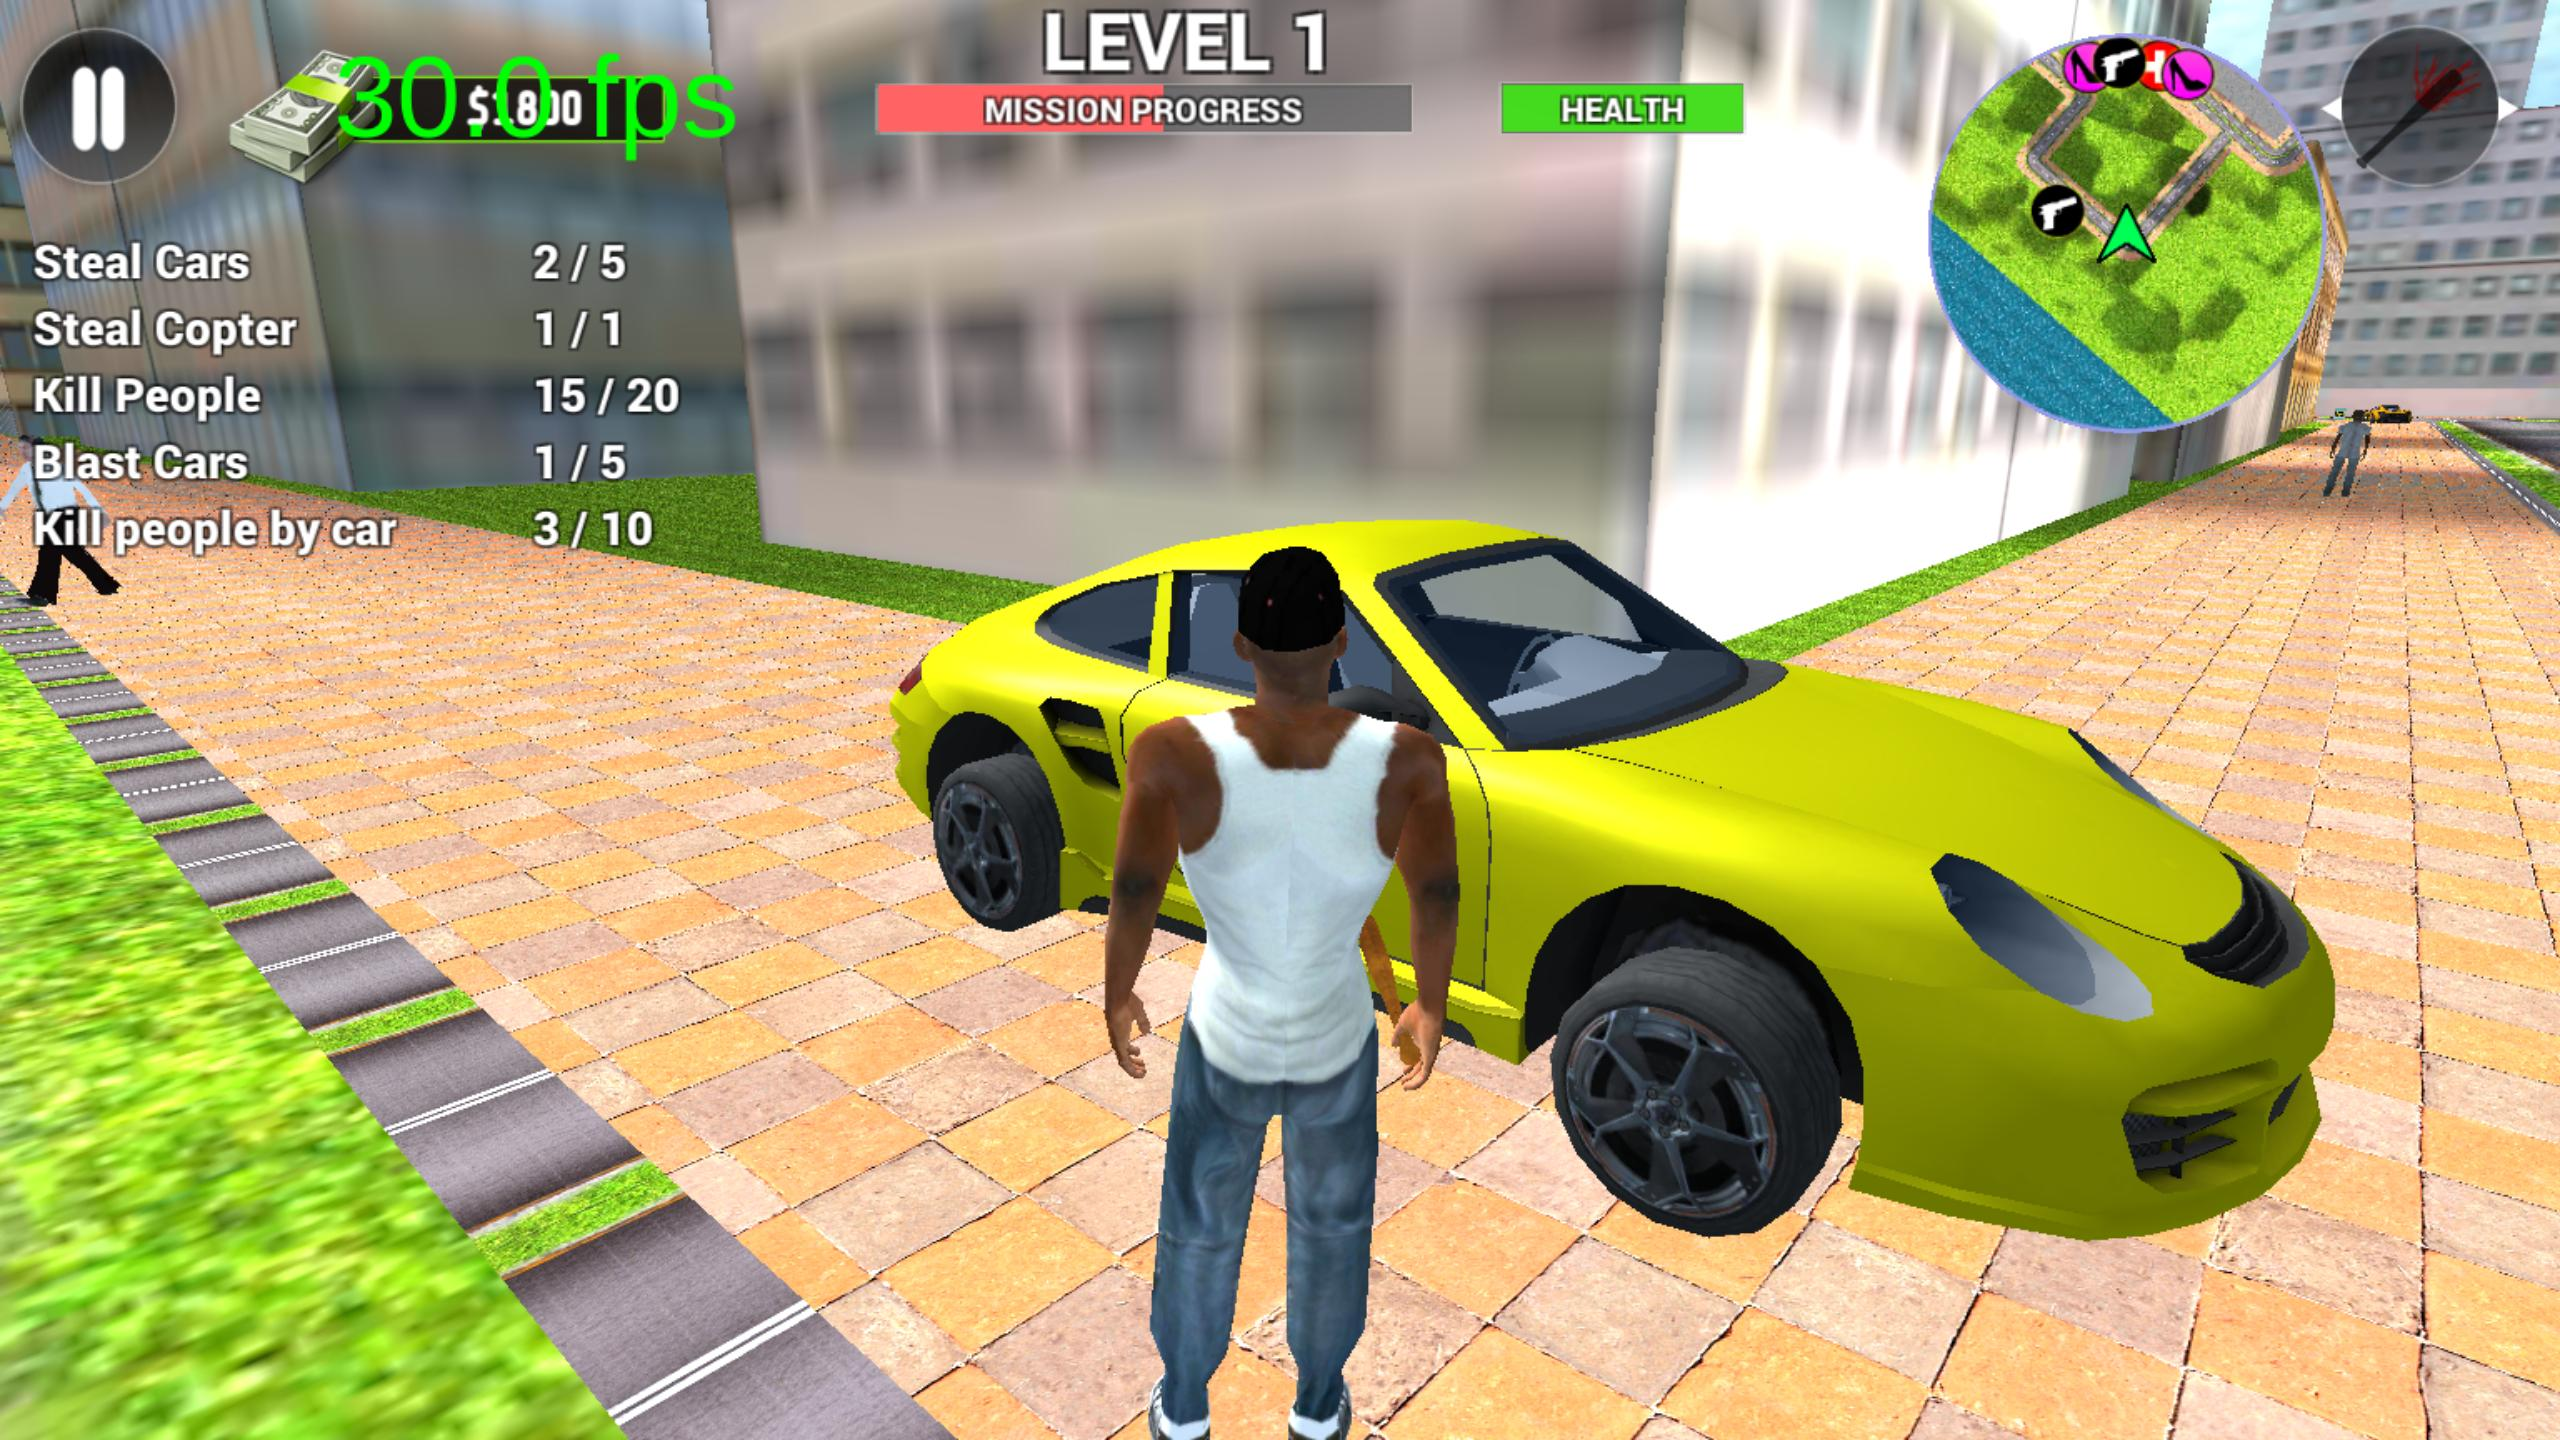 San Andreas Crime City for Android - APK Download